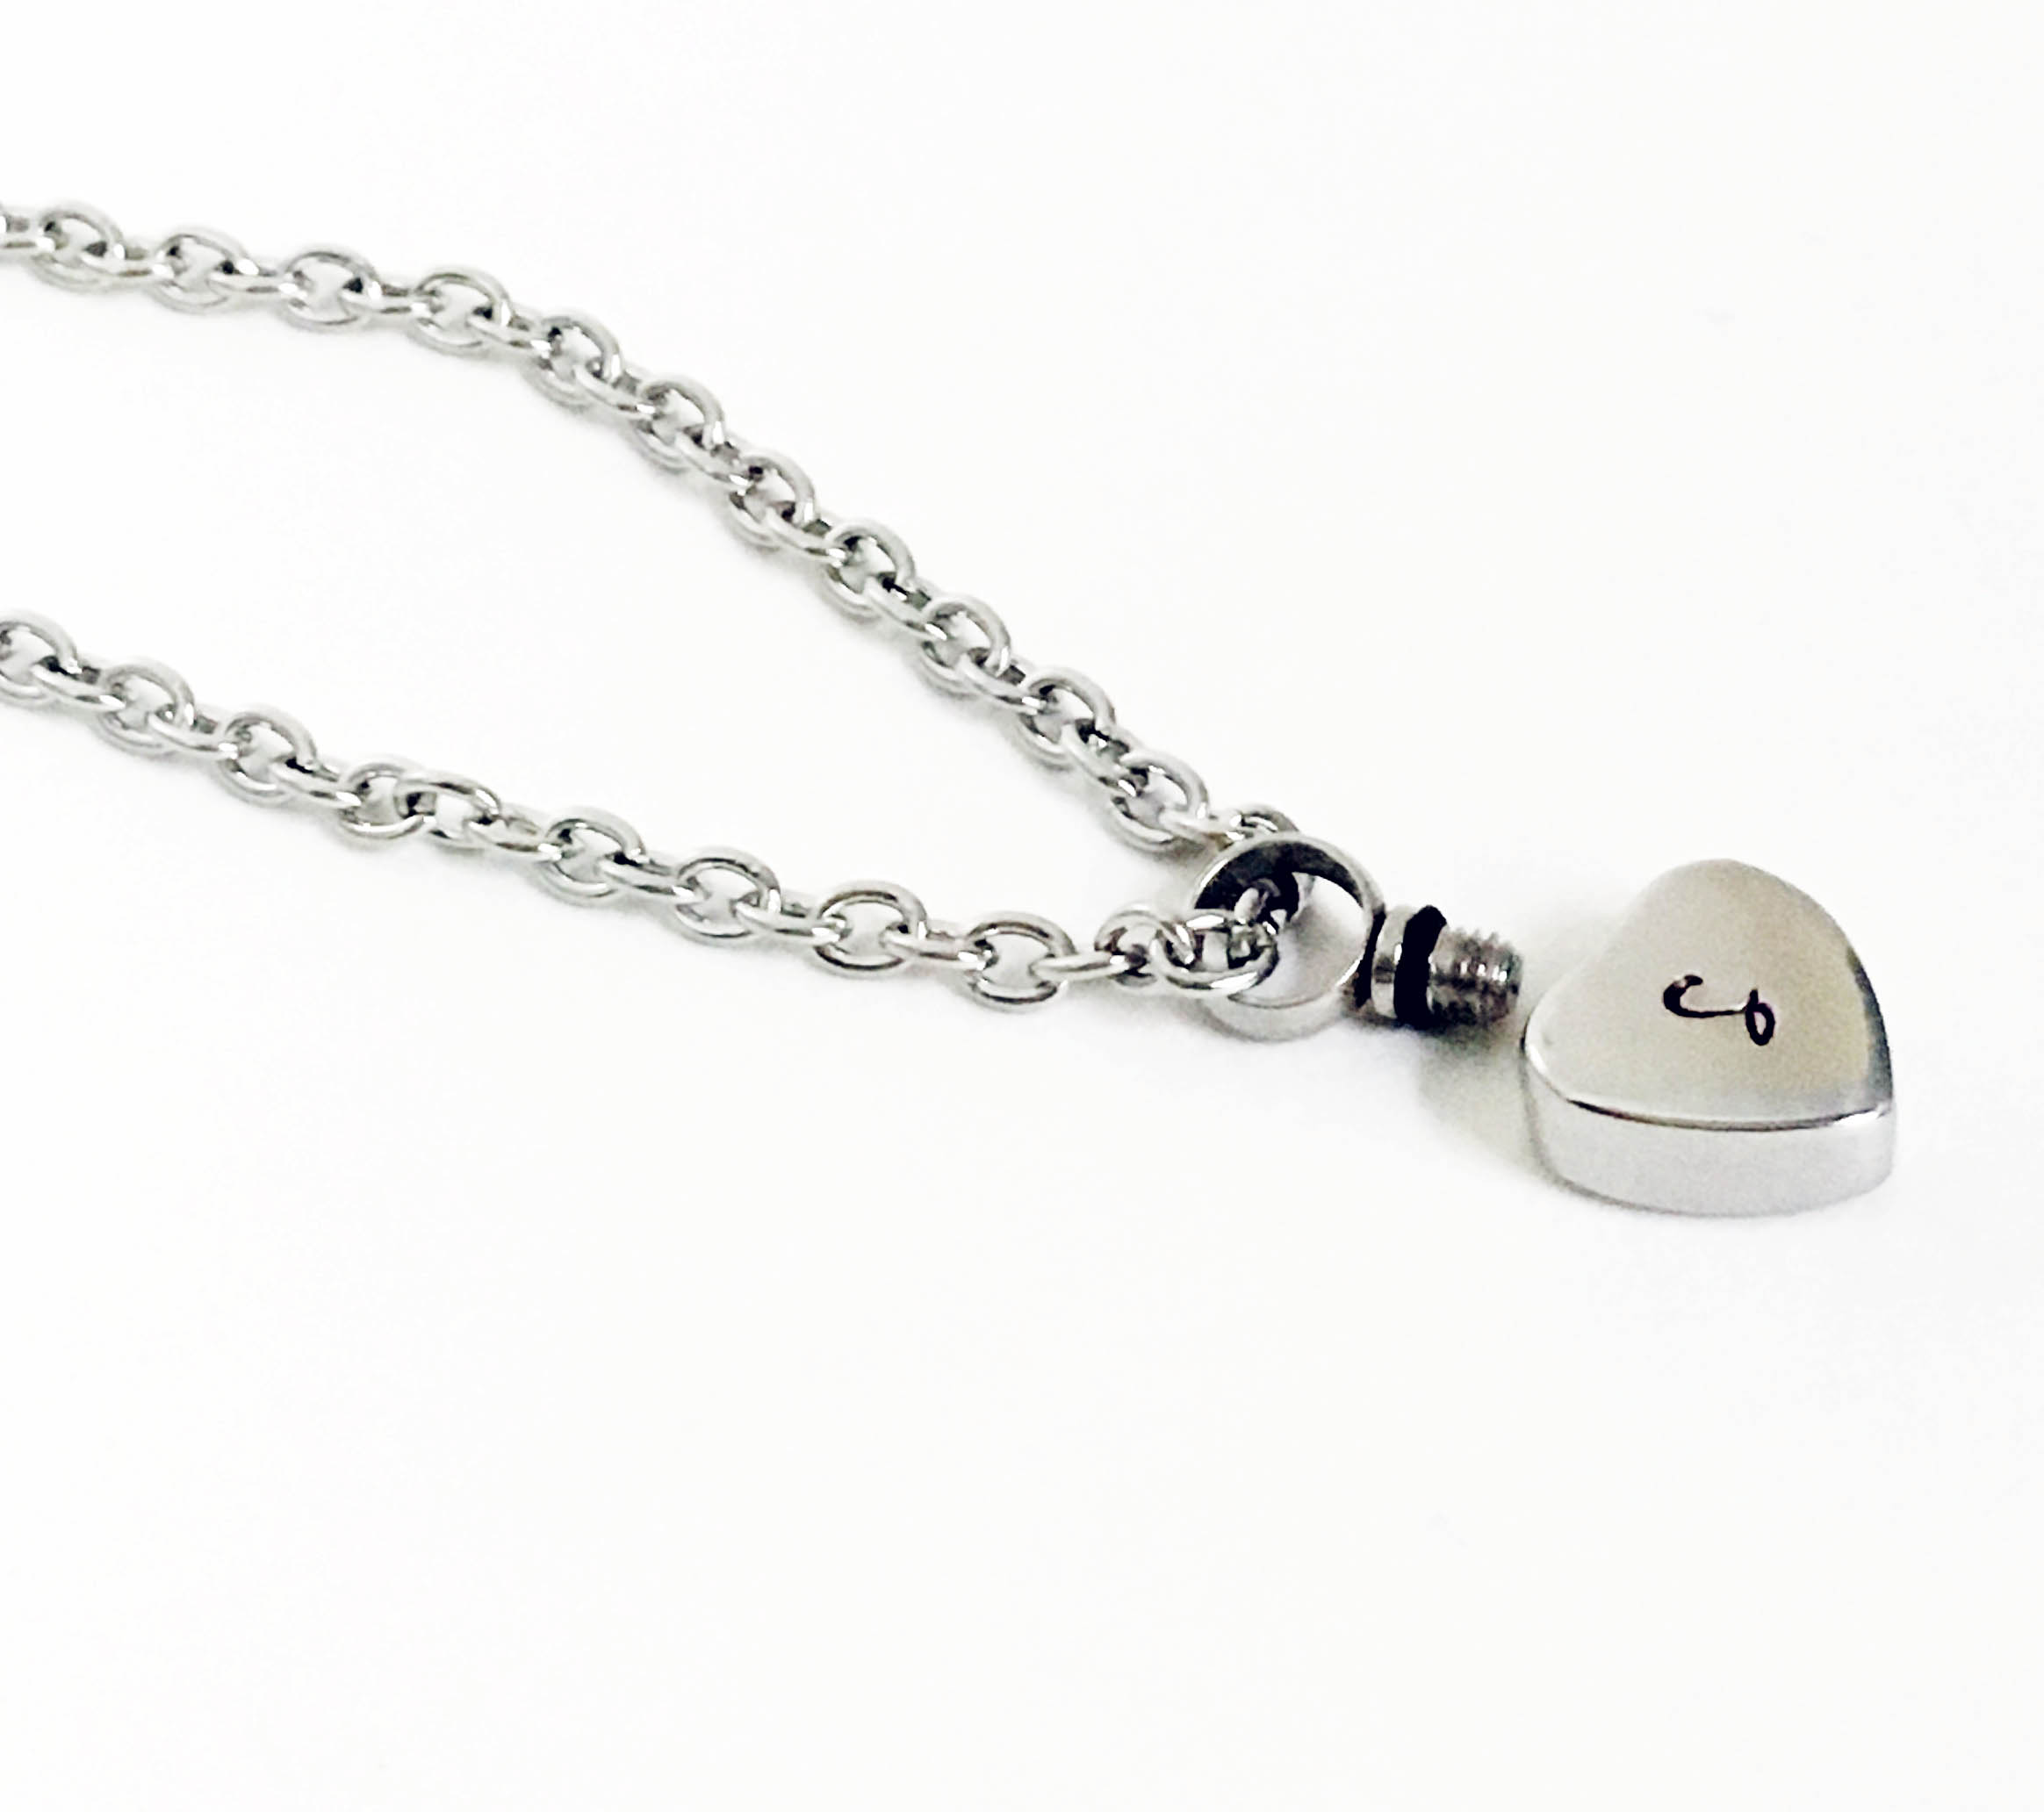 pendant stainless cremation note memorial steel for urn p jewelry spring ashes keepsake necklace music